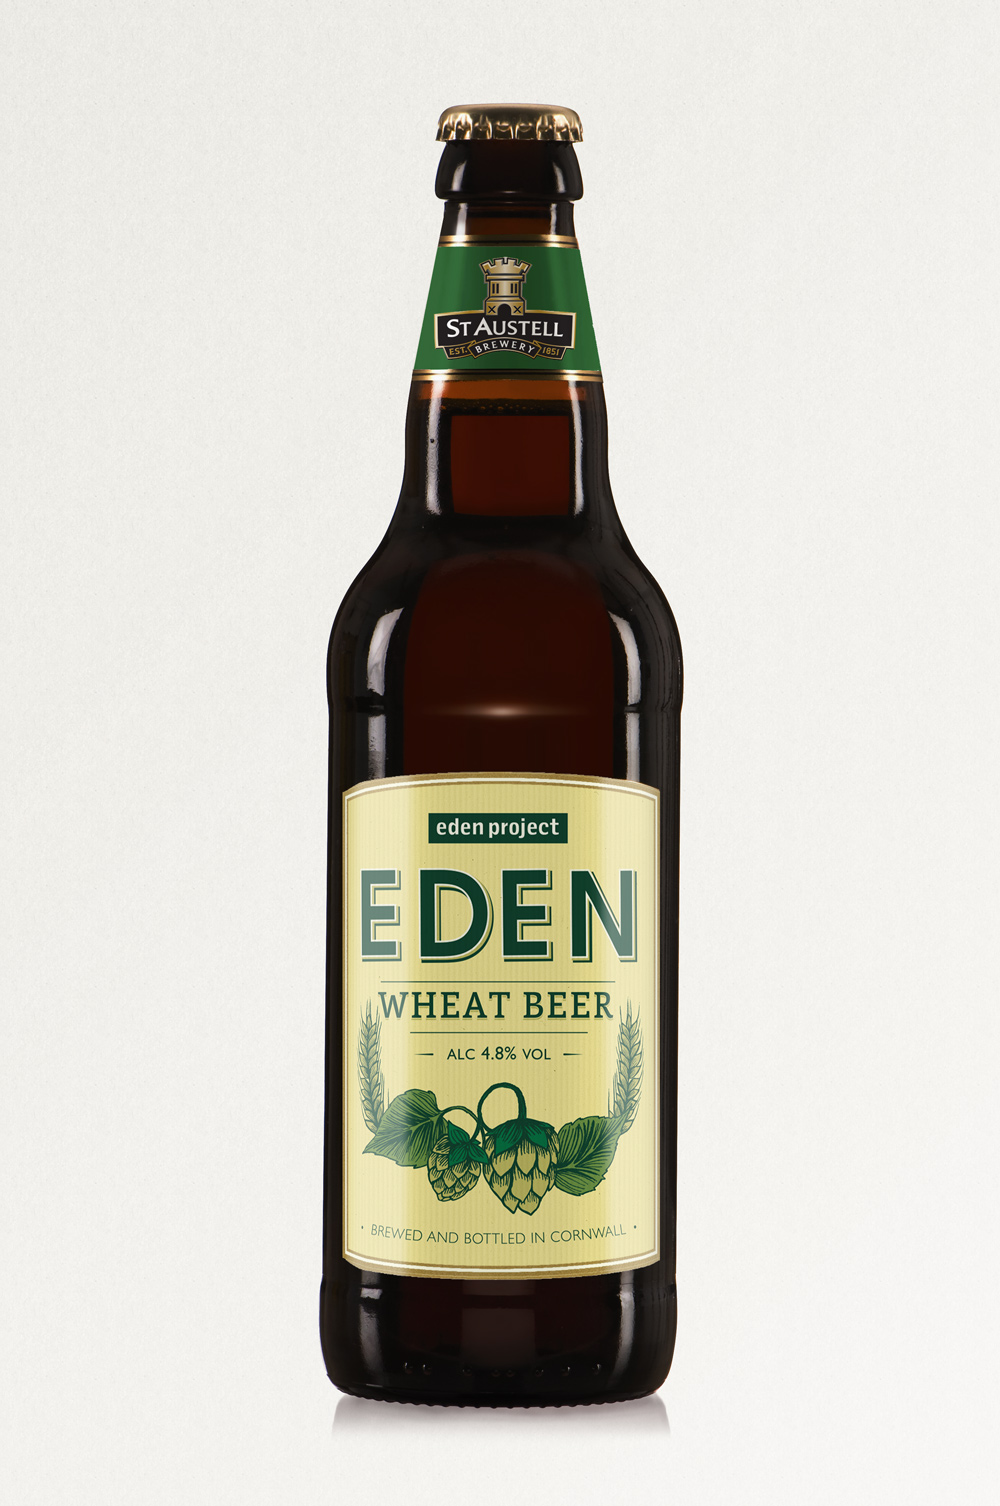 EDEN IPA, St Austell Brewery, wheat beer bottle label design